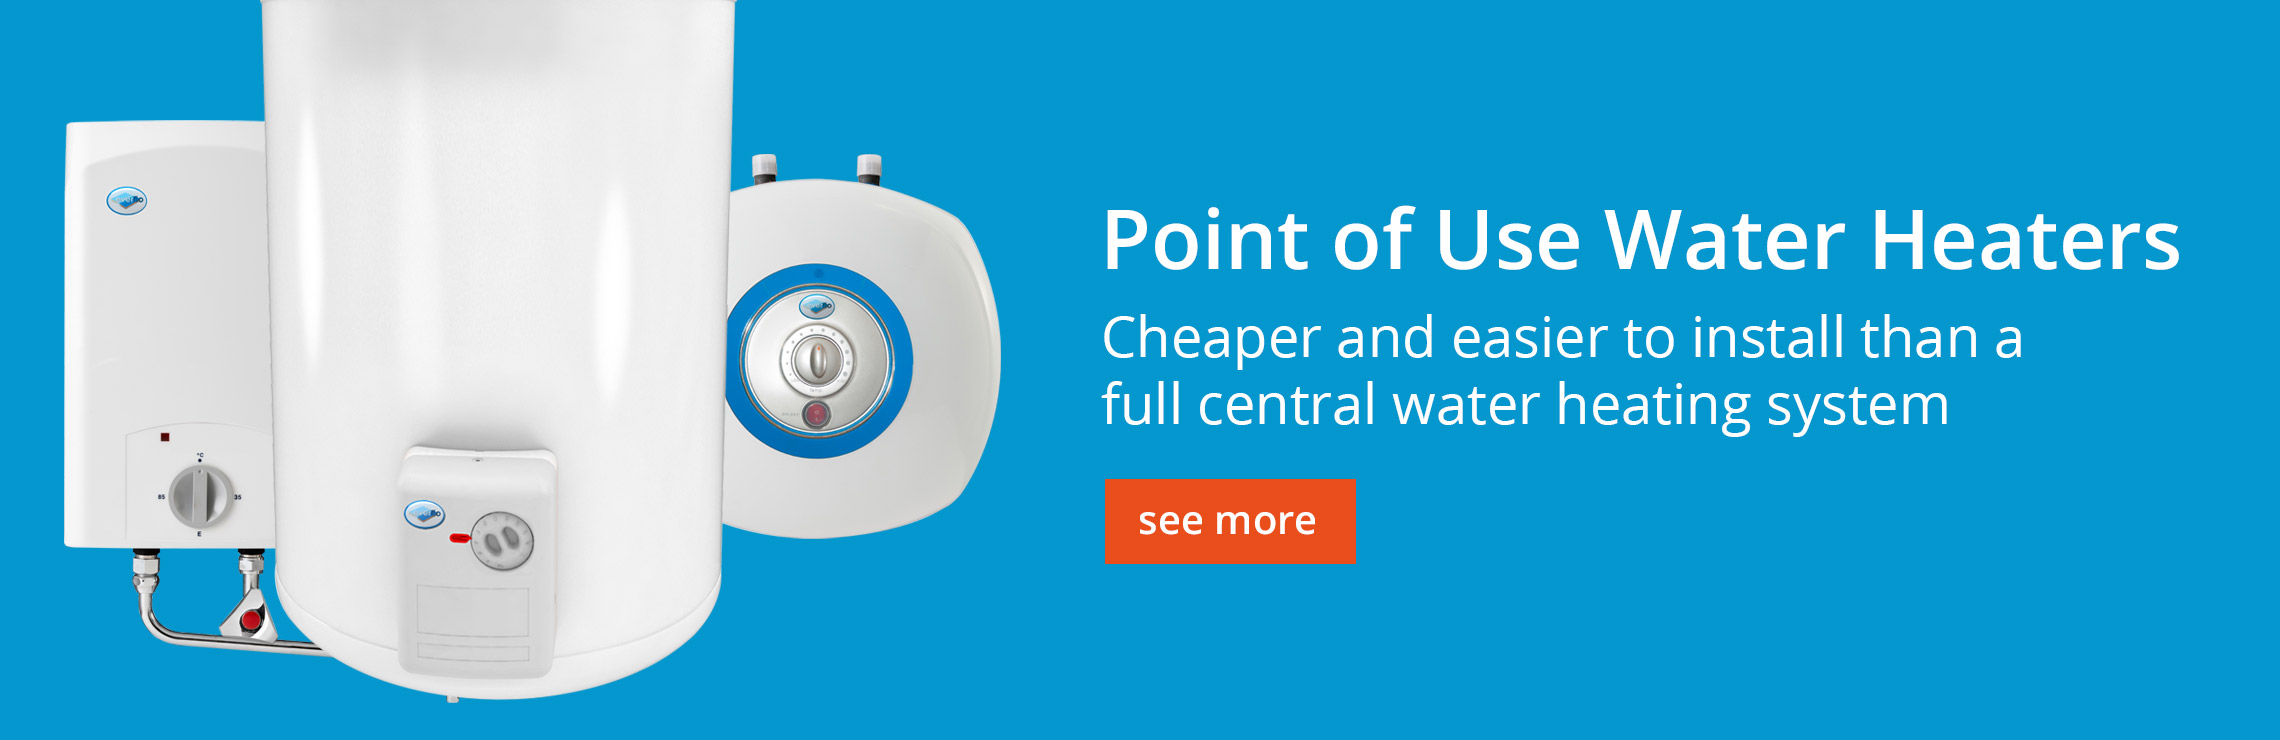 Point of Use Water Heaters